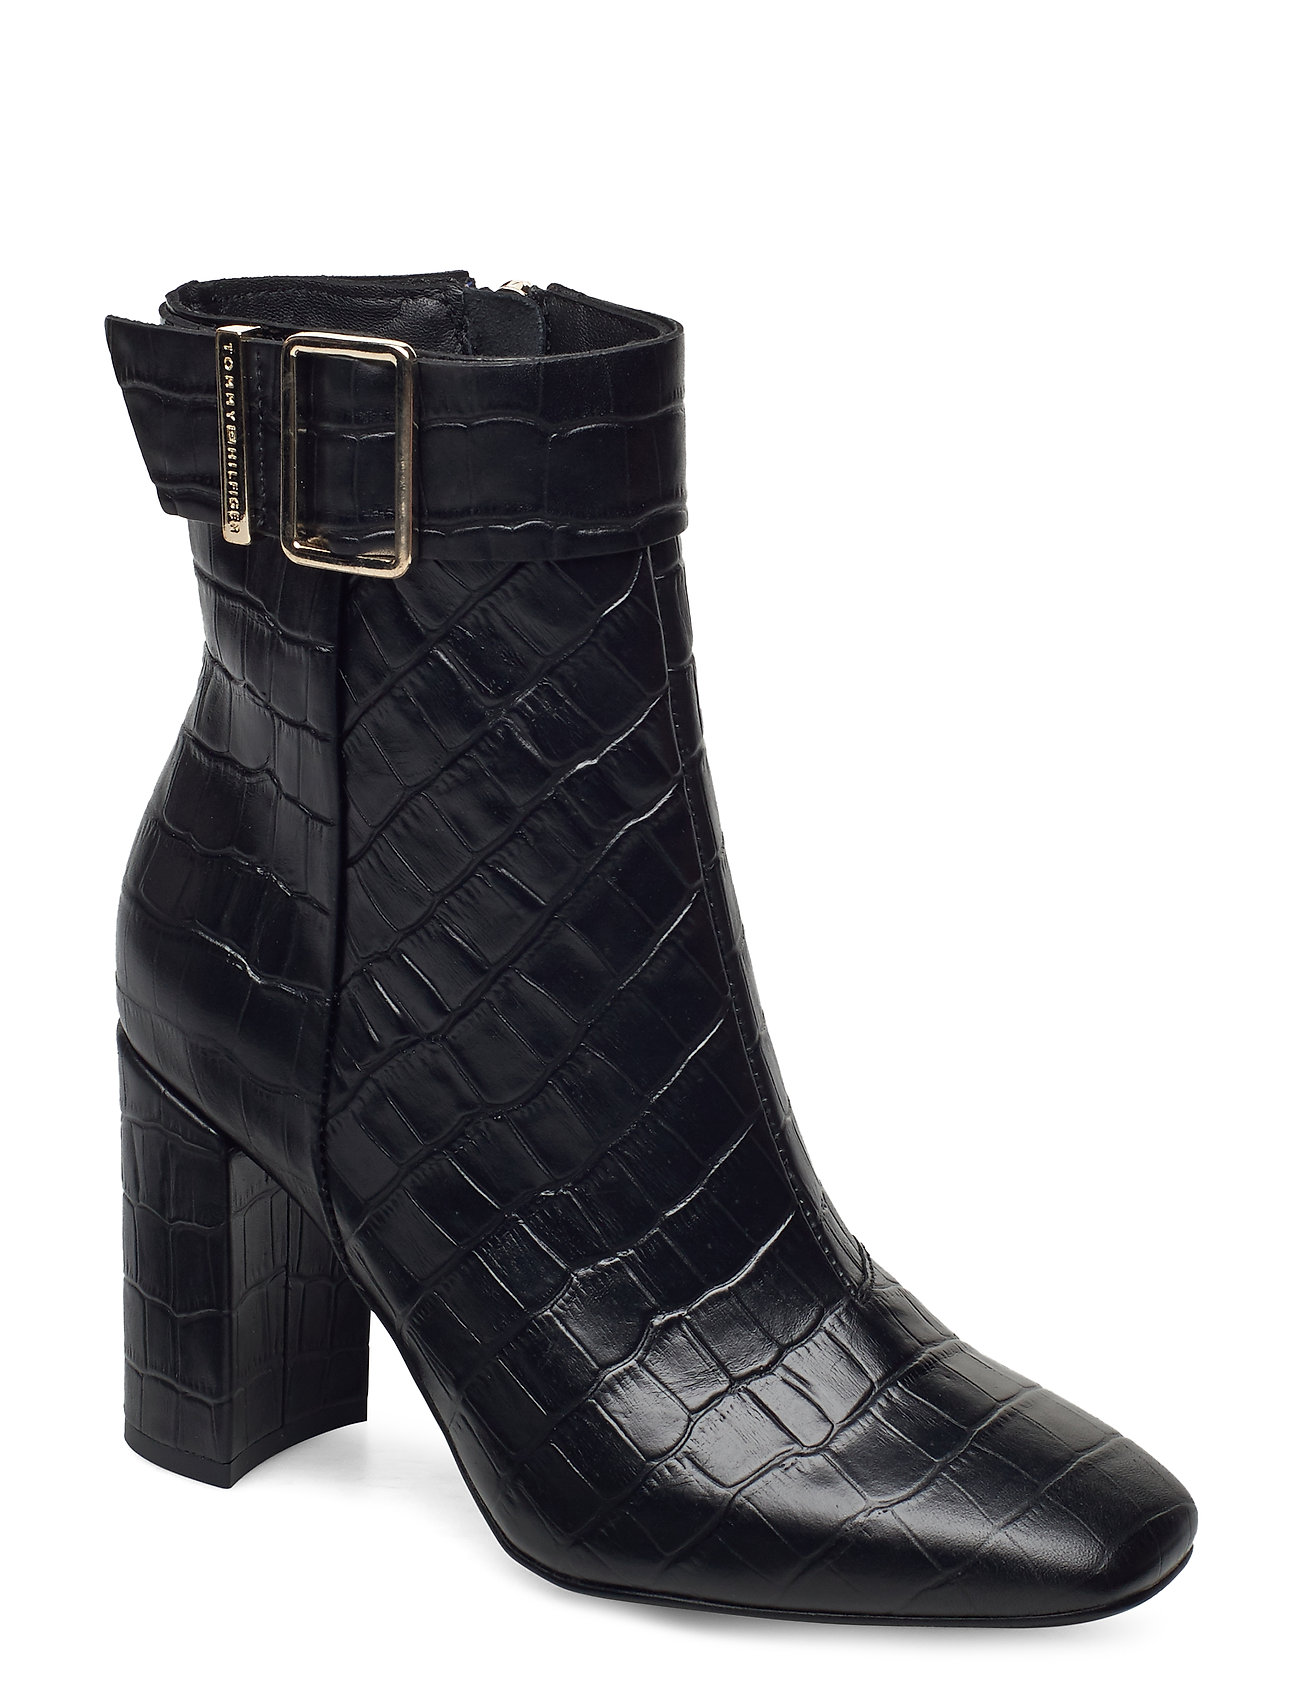 Image of Croco Look High Heel Boot Shoes Boots Ankle Boots Ankle Boot - Heel Sort Tommy Hilfiger (3448709345)